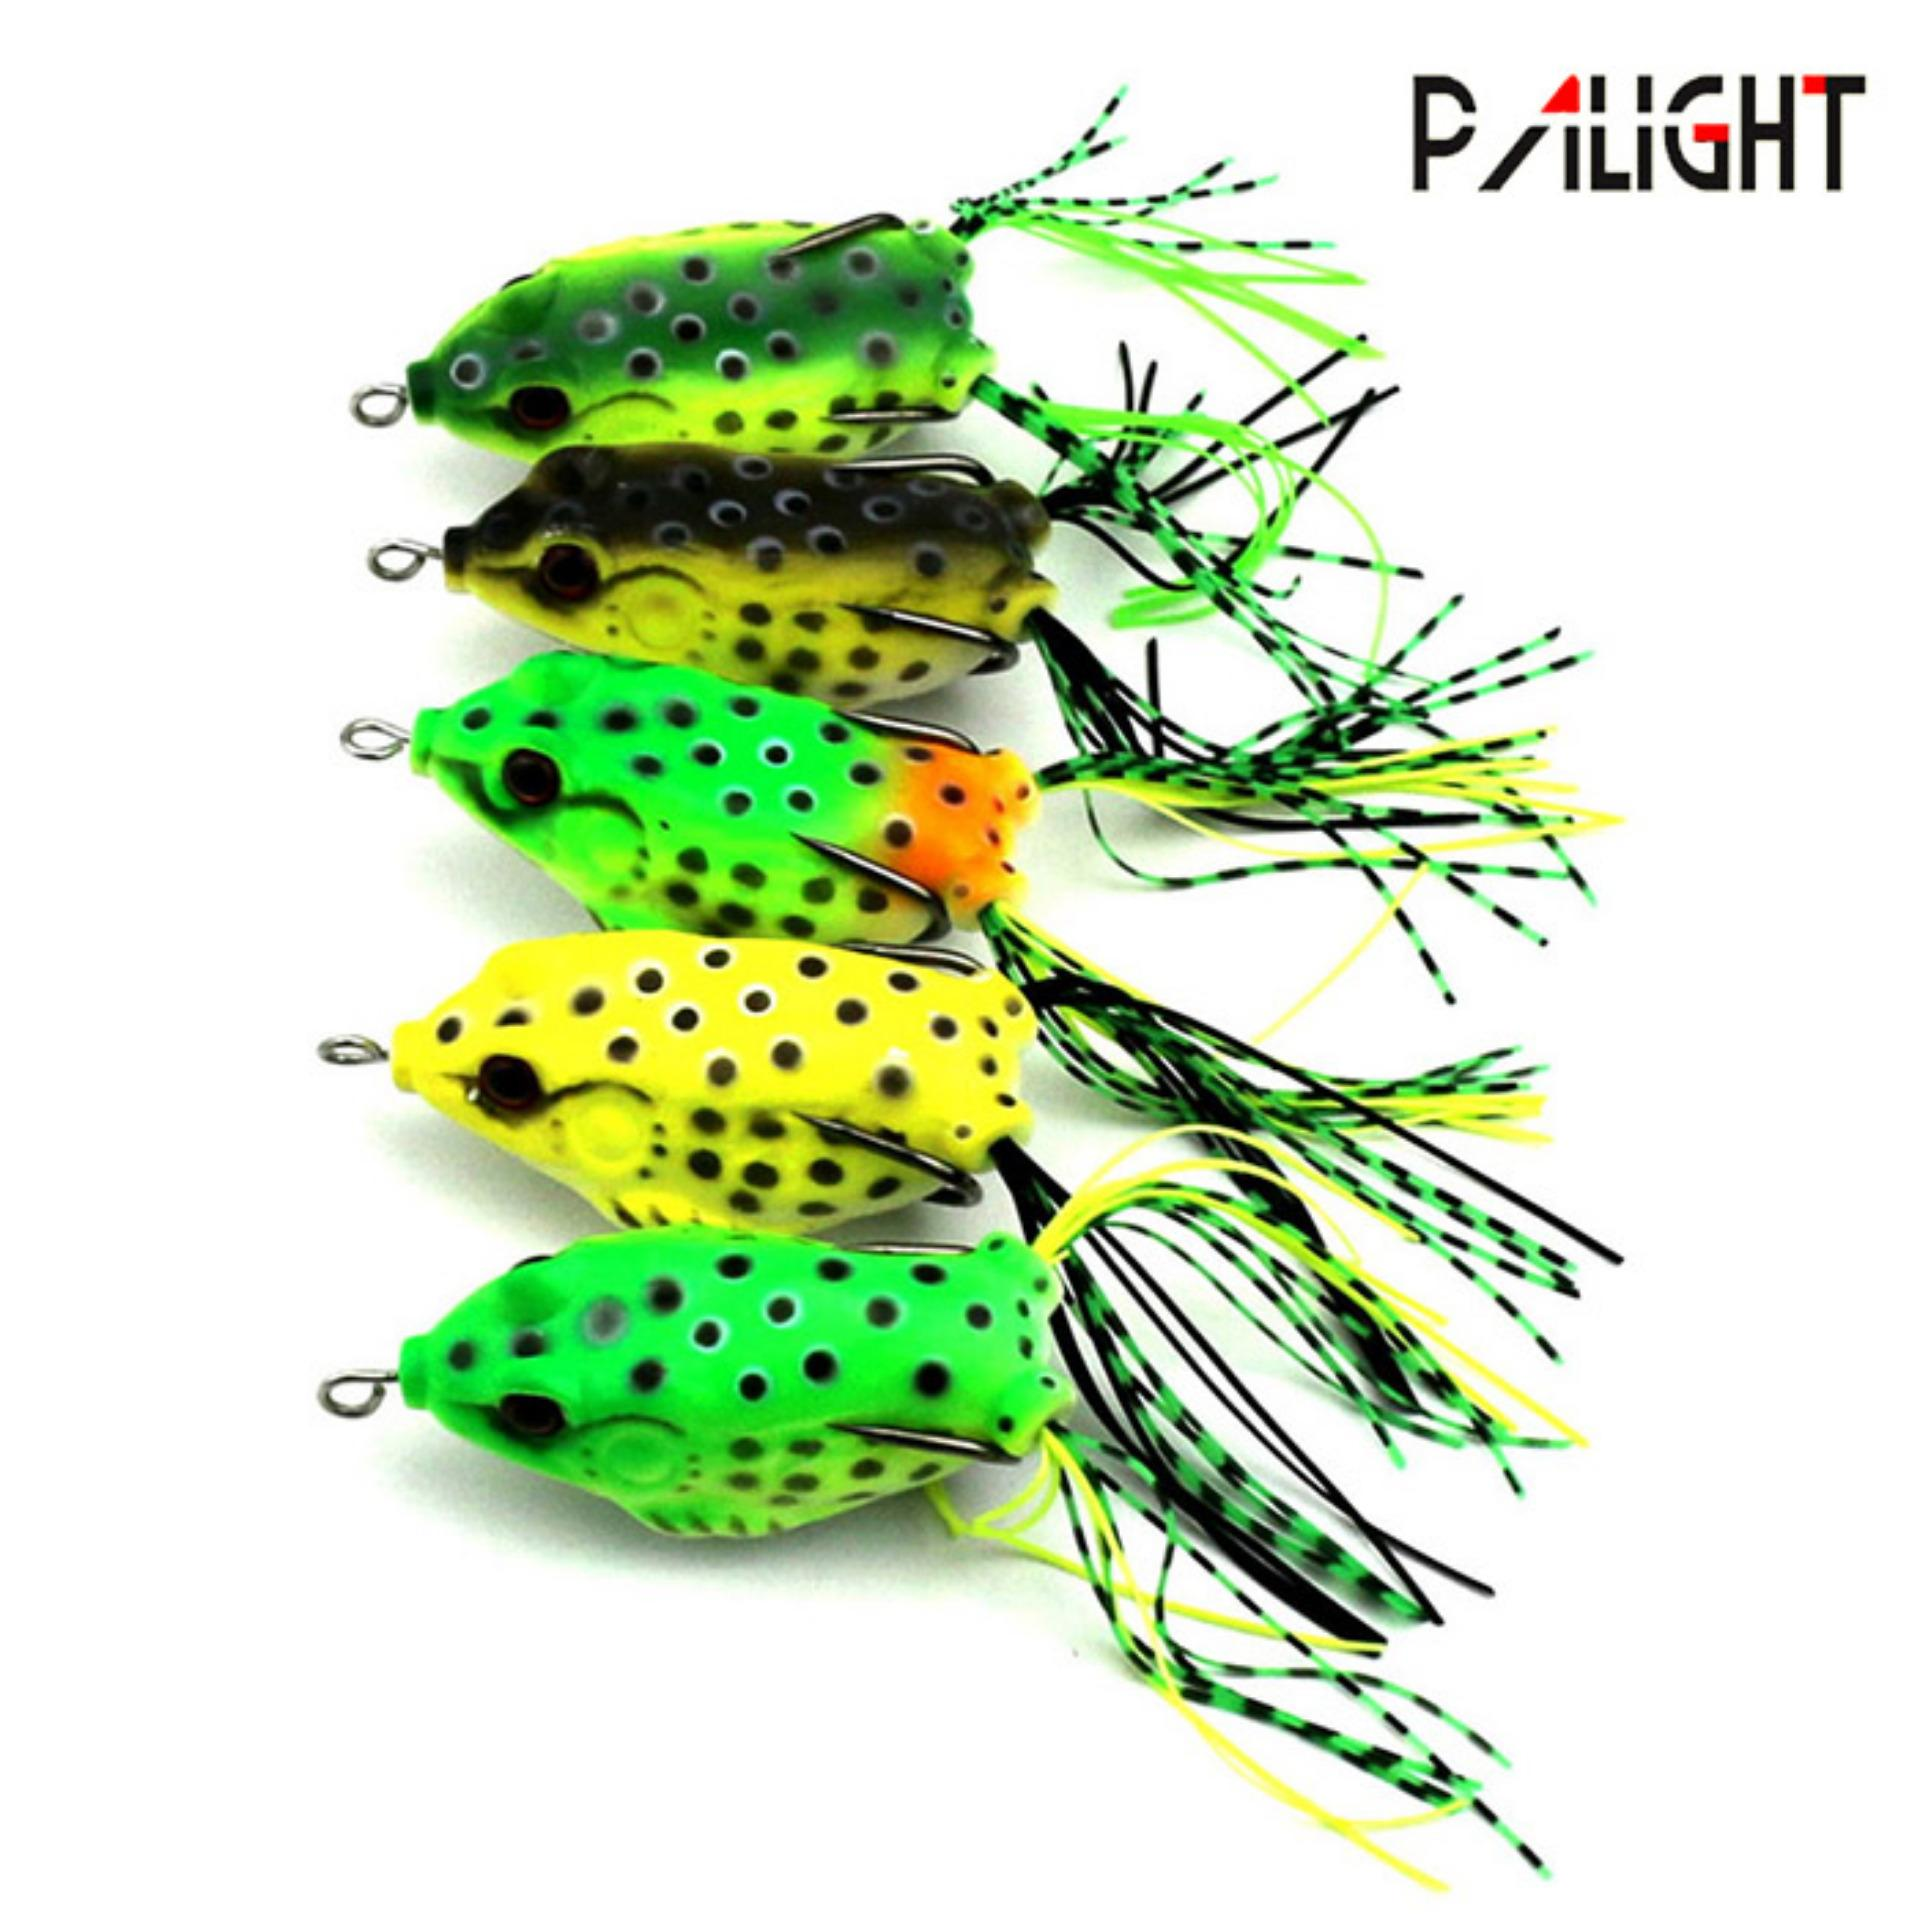 PAlight 5Pcs Soft Plastic Fishing lures Frog lure With Hook Top Water 6.5CM 13G Artificial